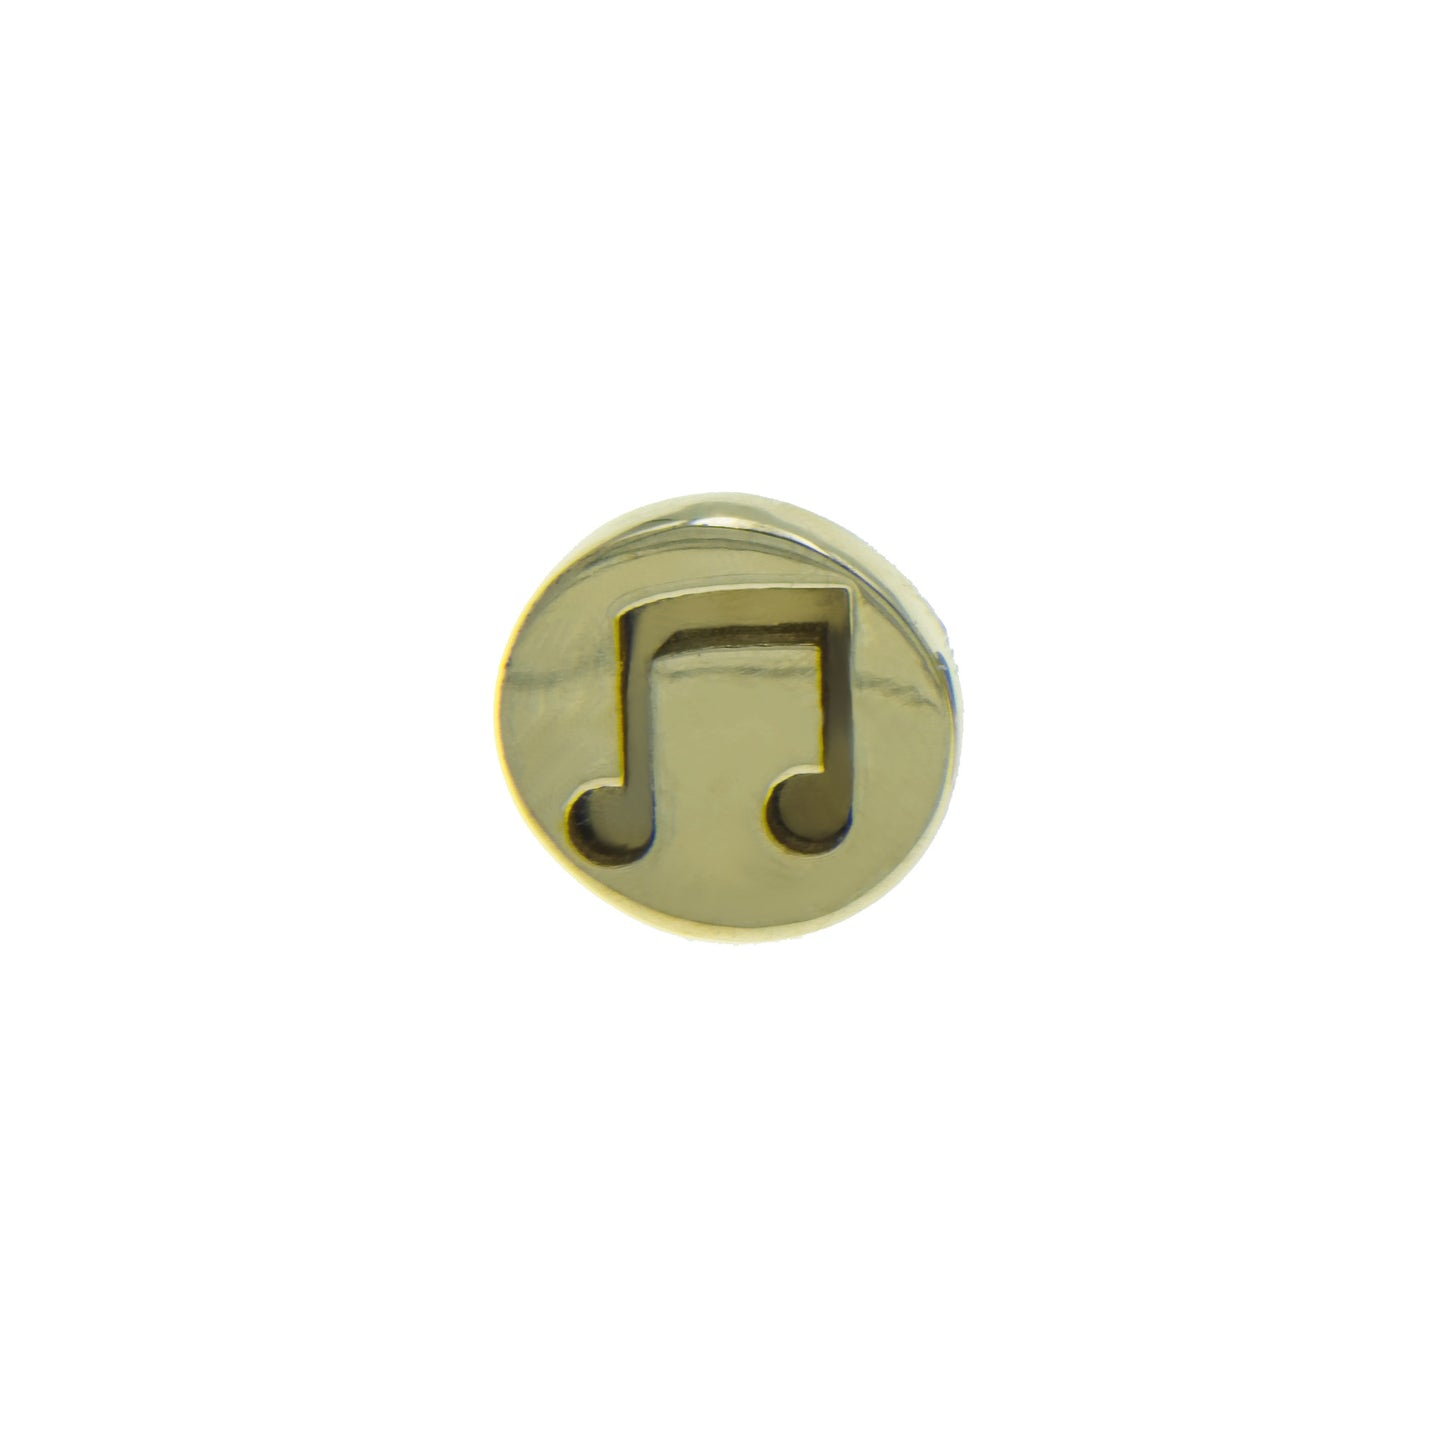 Music pin - The Collective Dublin